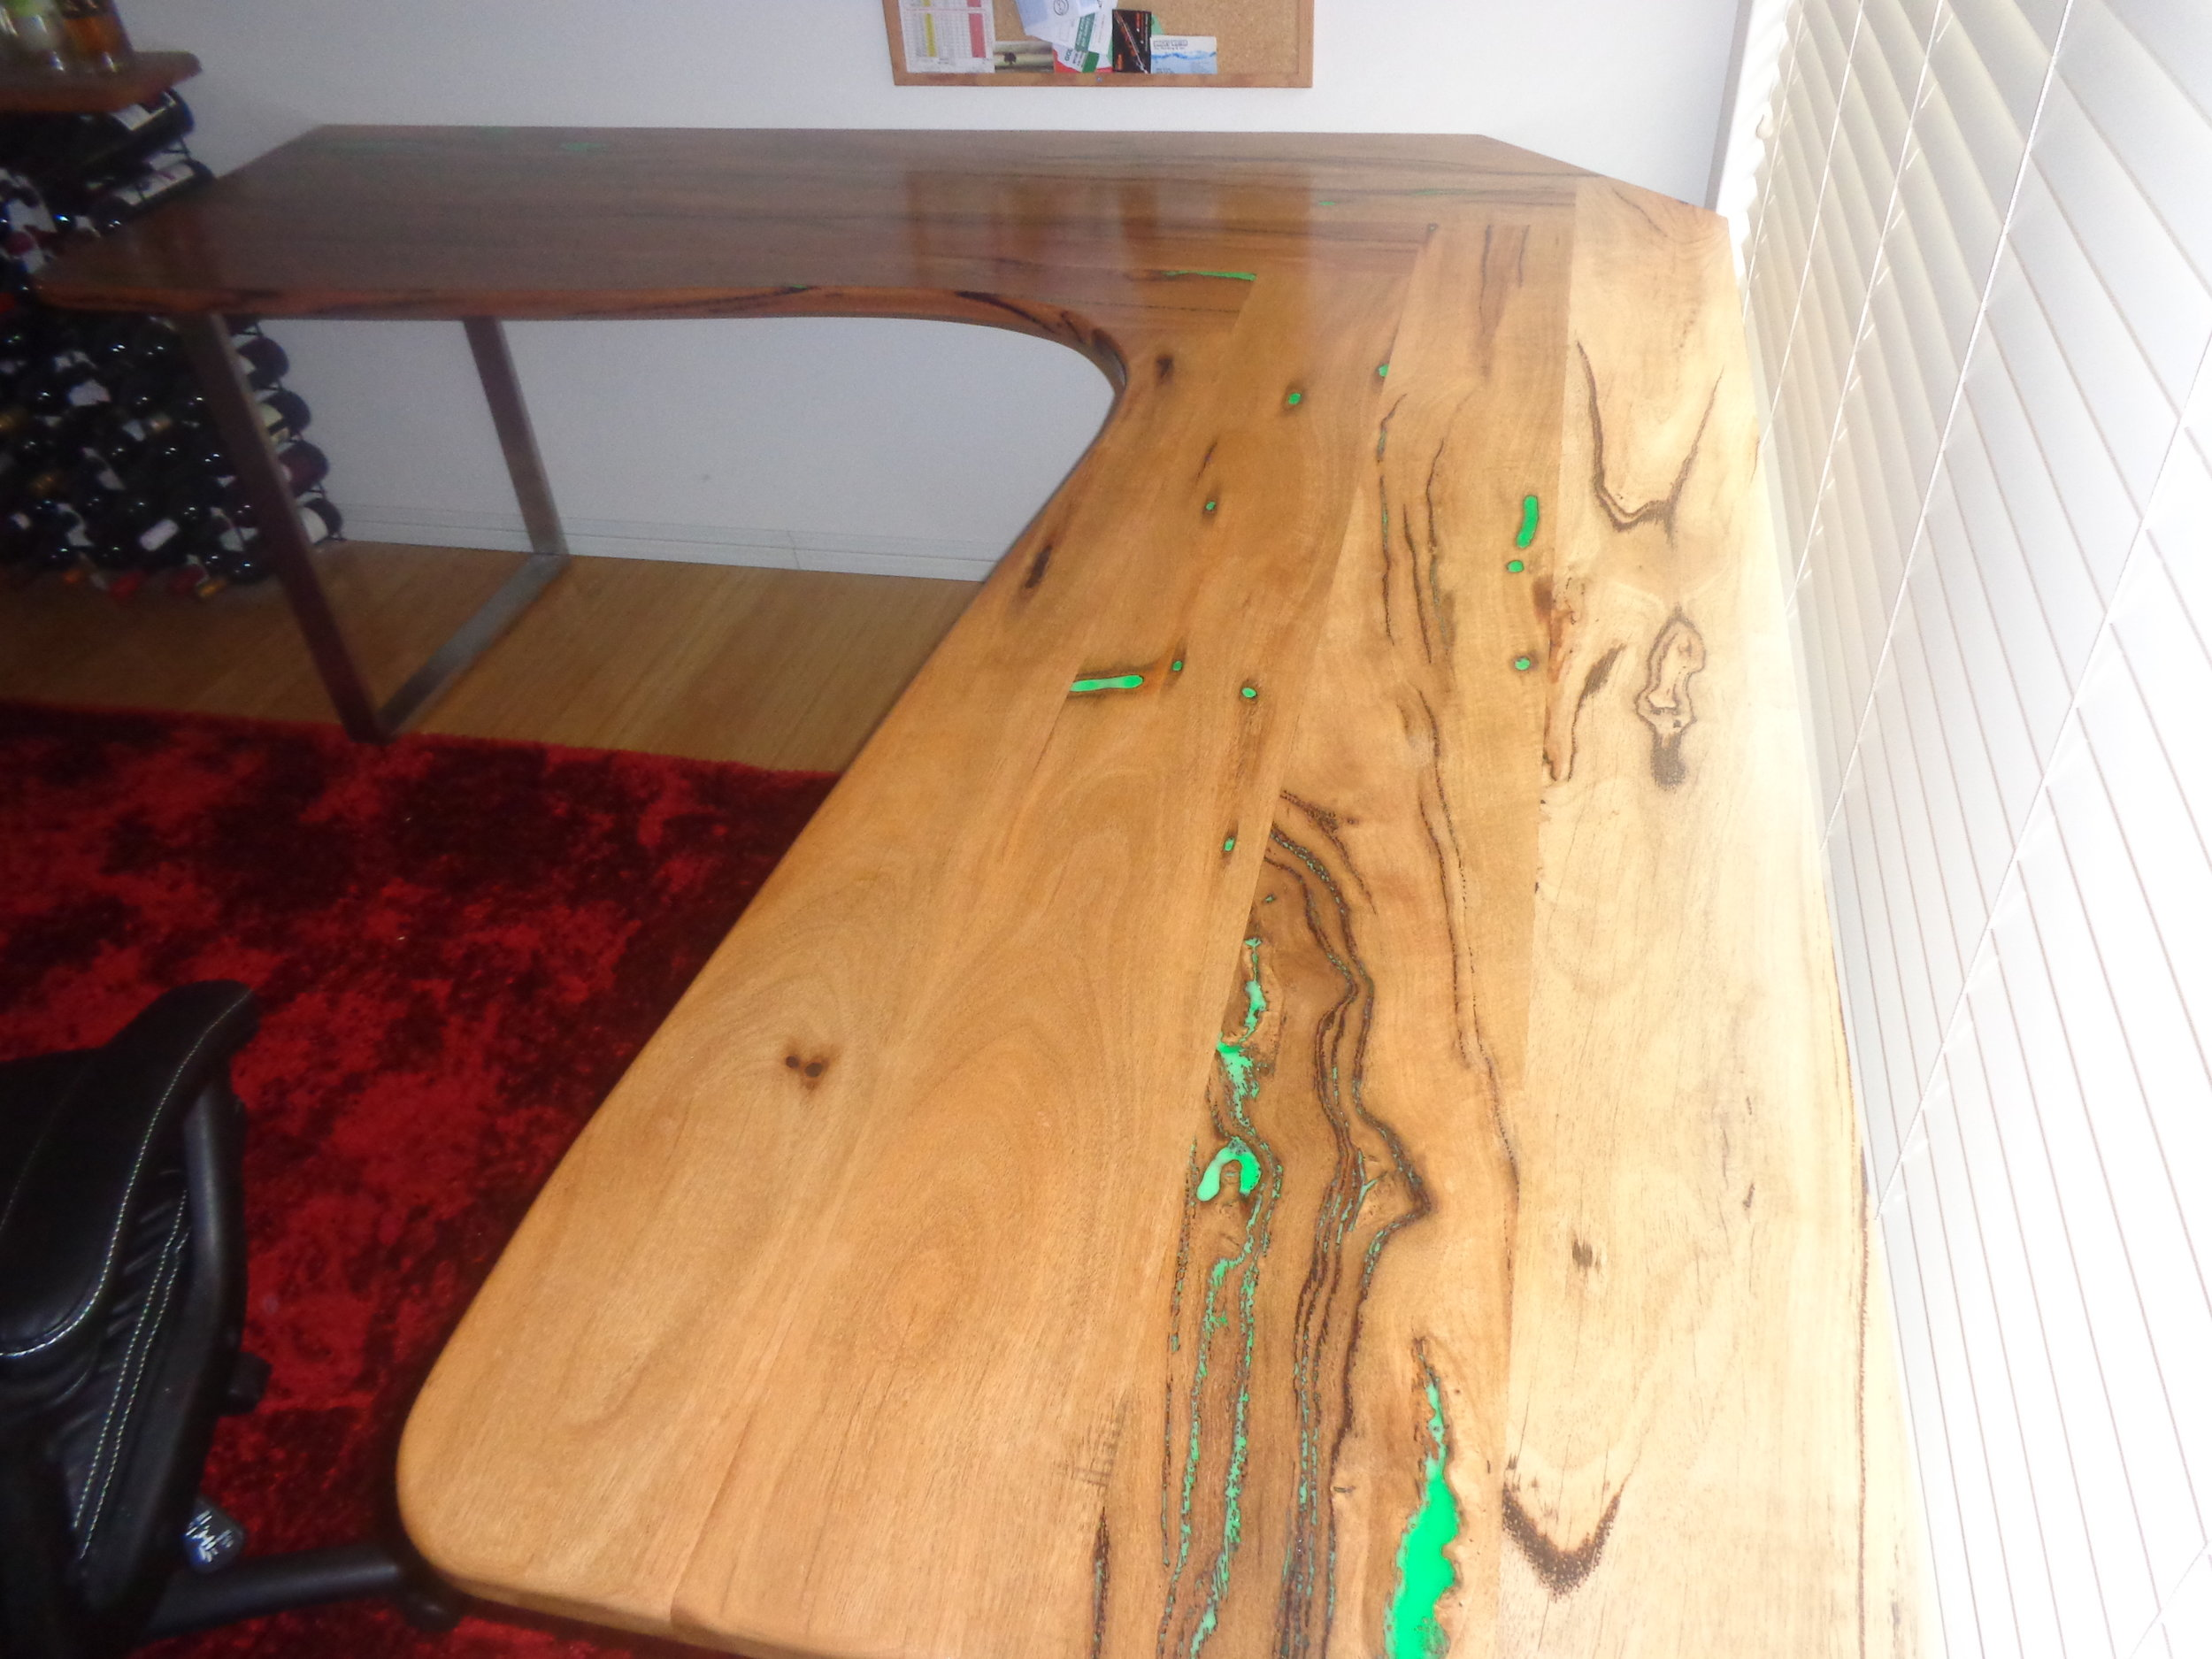 Marri desk with glow in the dark resin